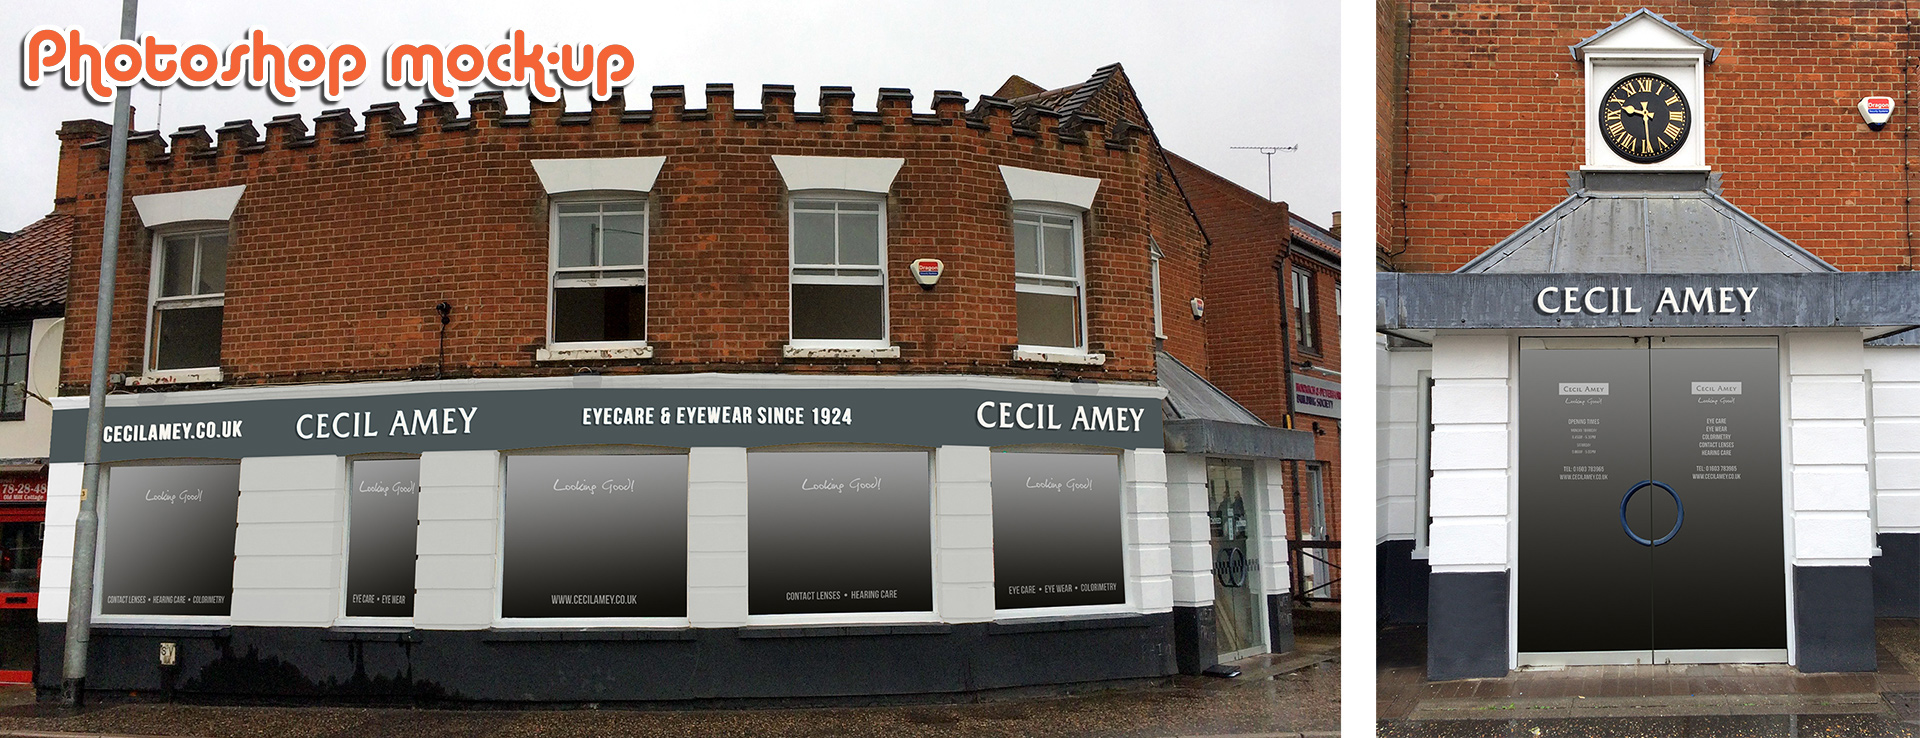 Photoshop mock up of Cecil Amey signs Wroxham